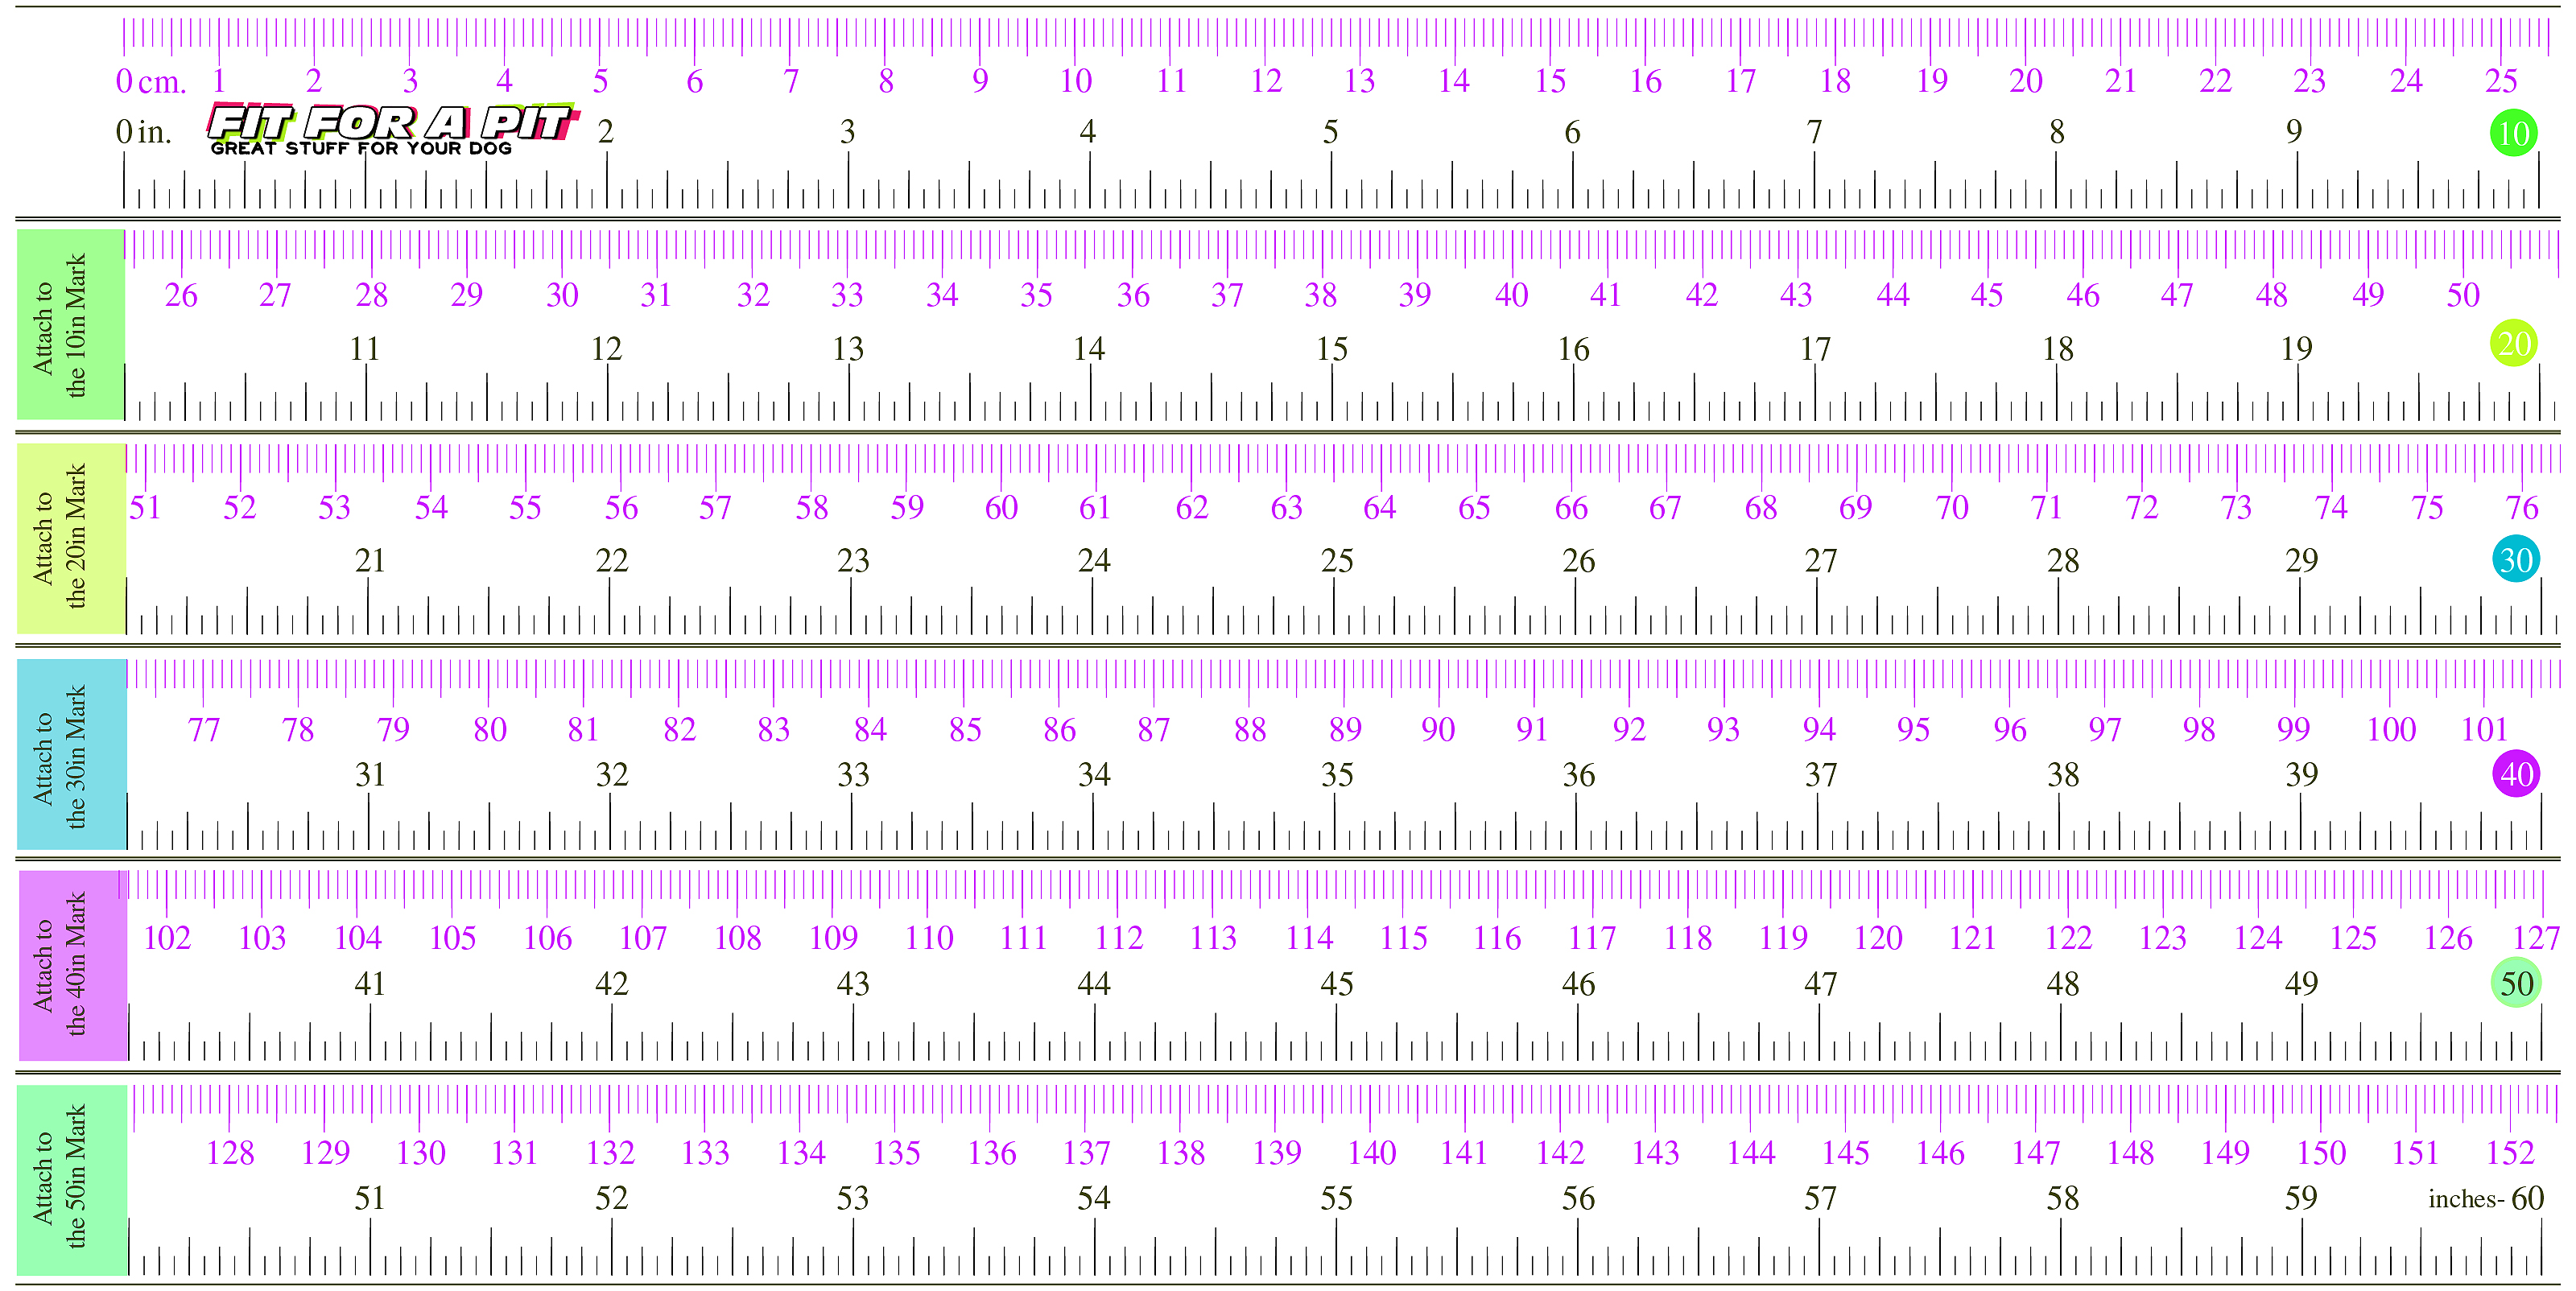 Fit For A Pit Printable Measuring Tape